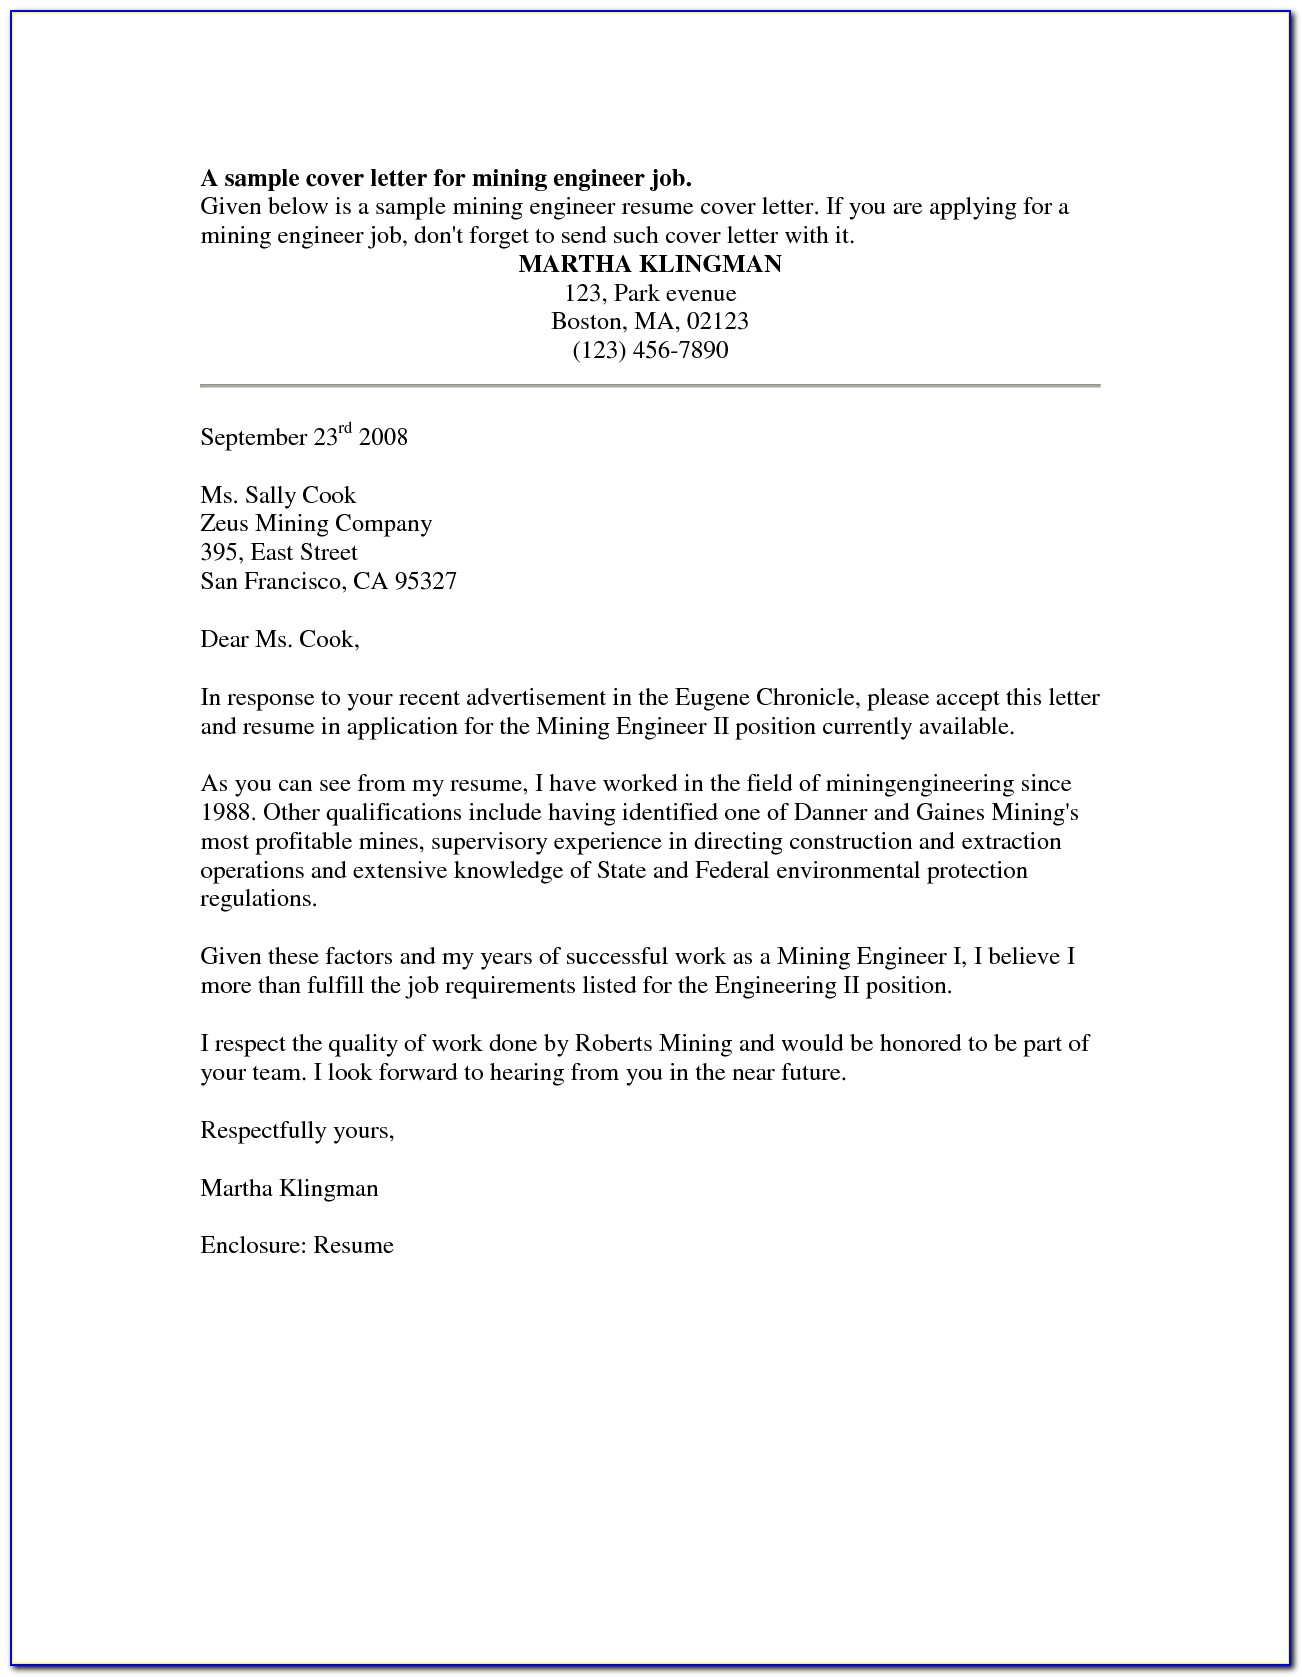 sample resume and cover letter vincegray2014 free for career change samples housekeeping Resume Free Sample Cover Letter For Resume